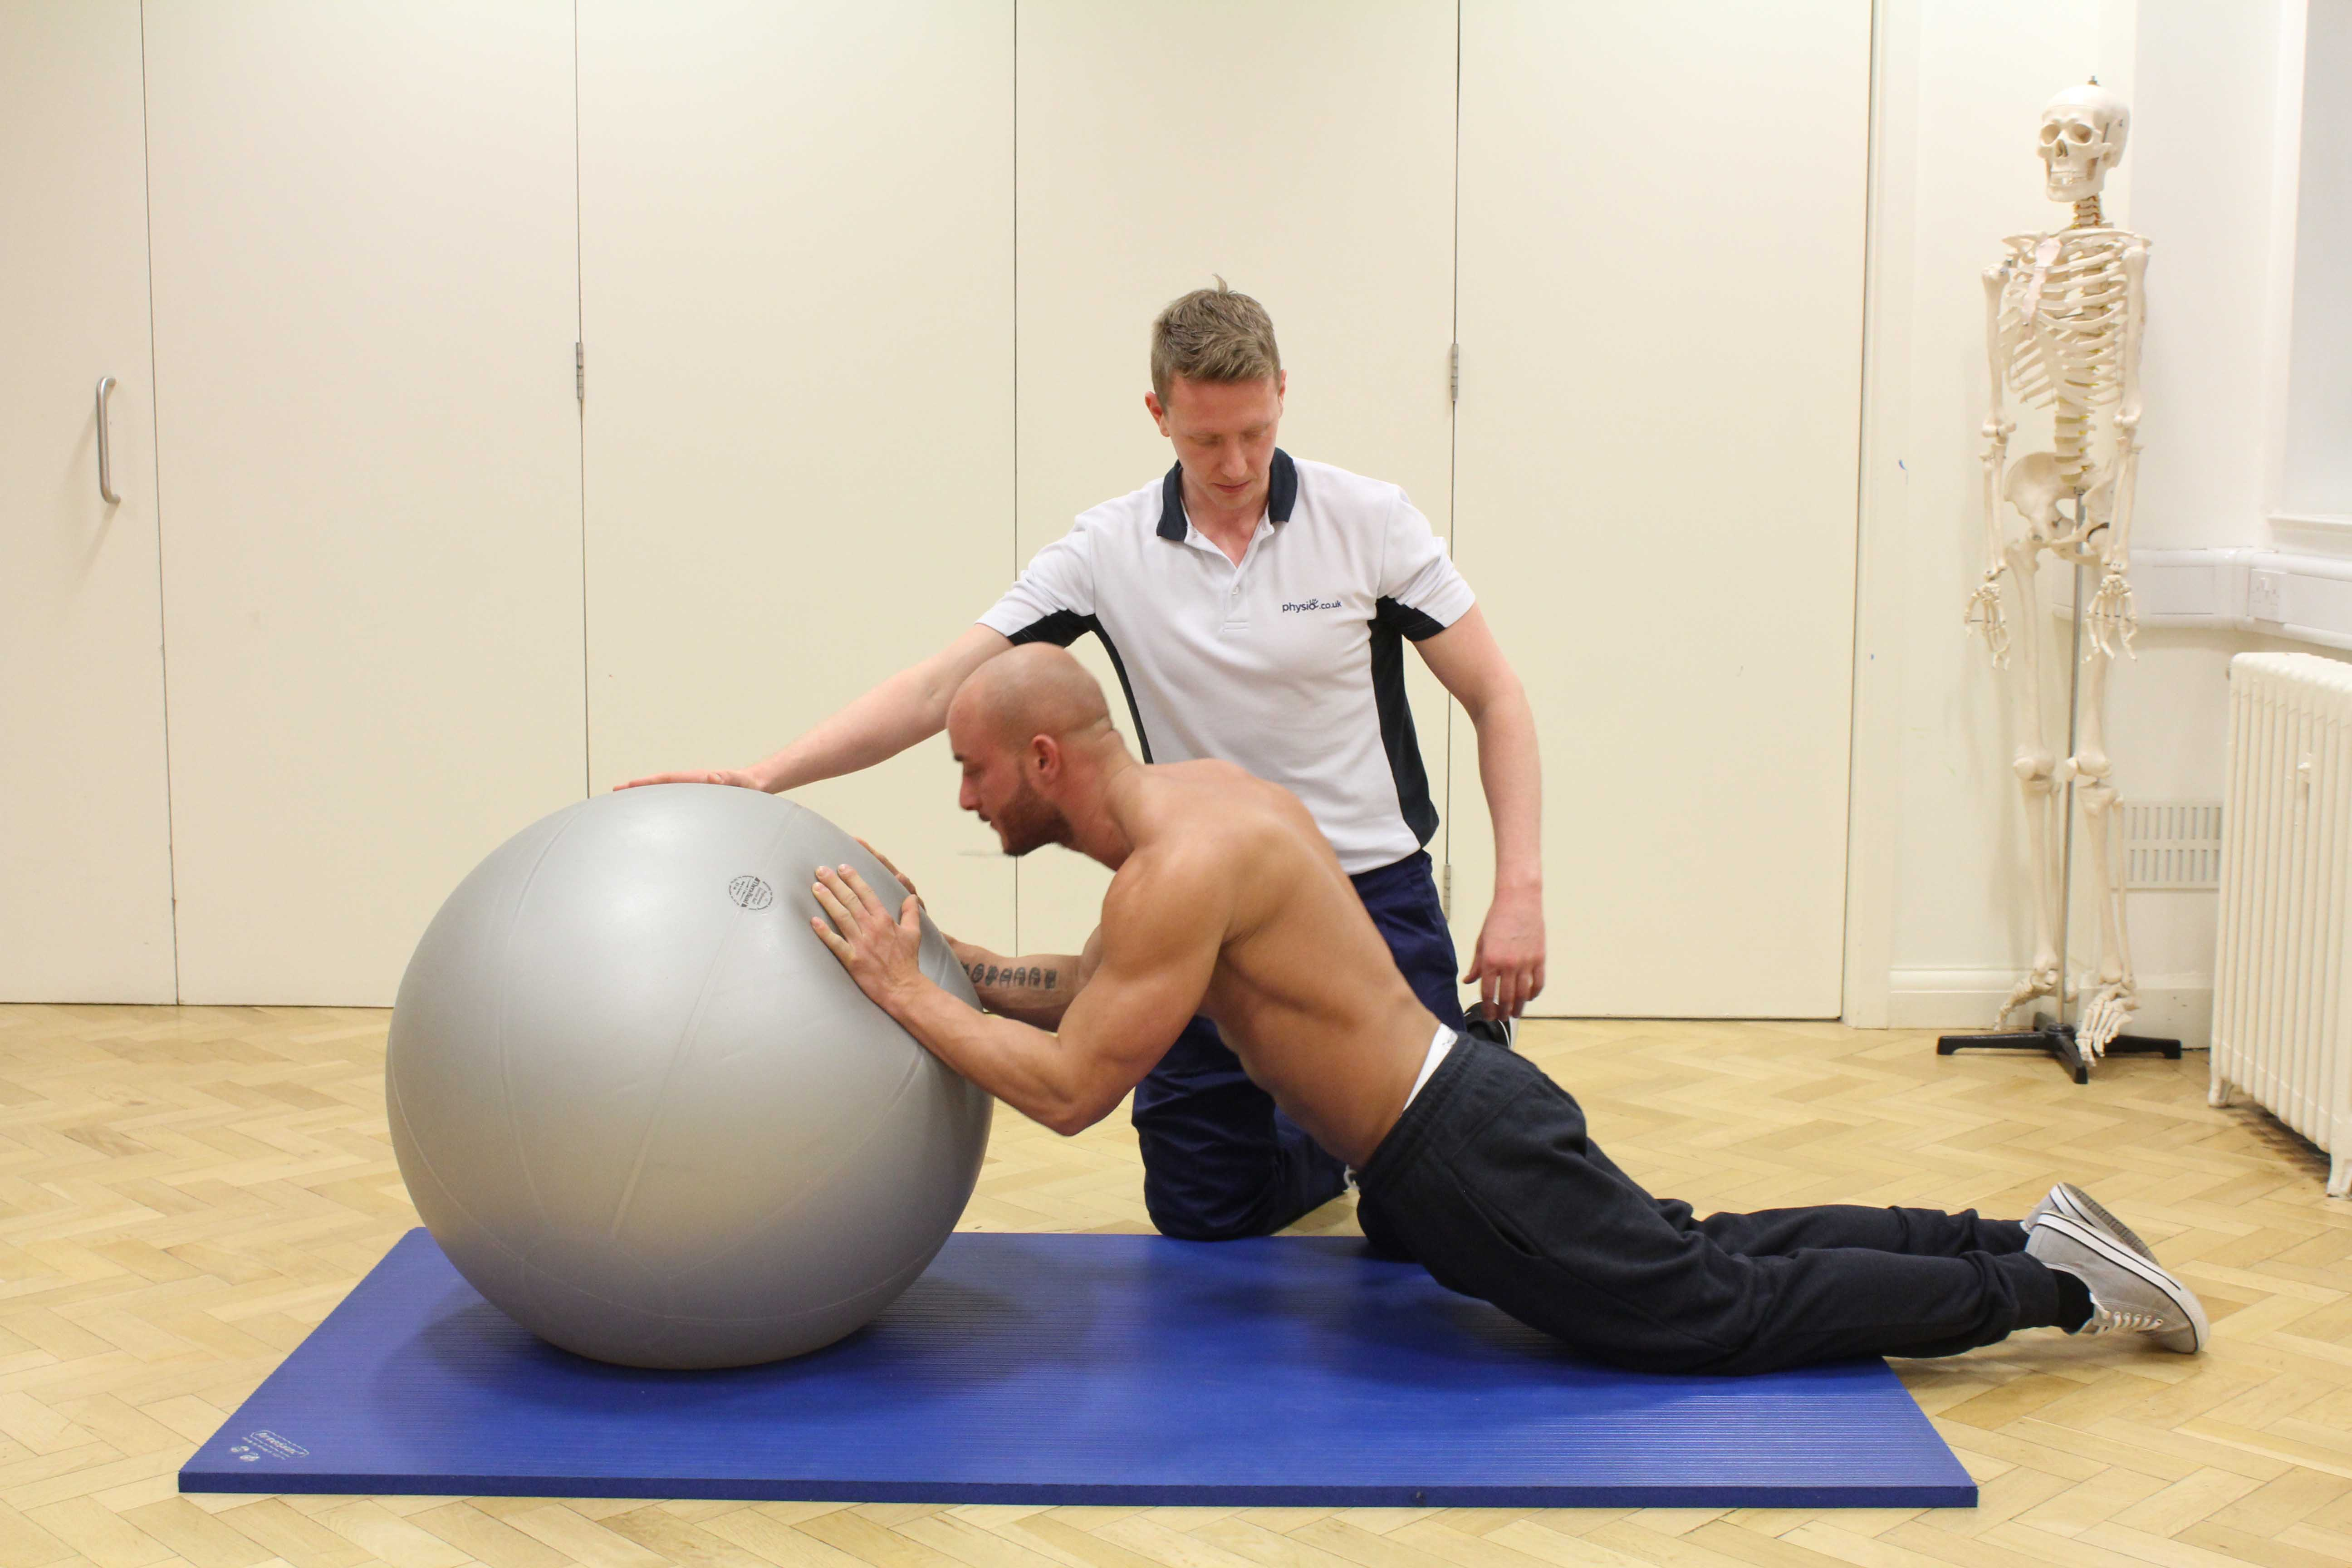 Core stability exercises supervised by an experienced physiotherapist